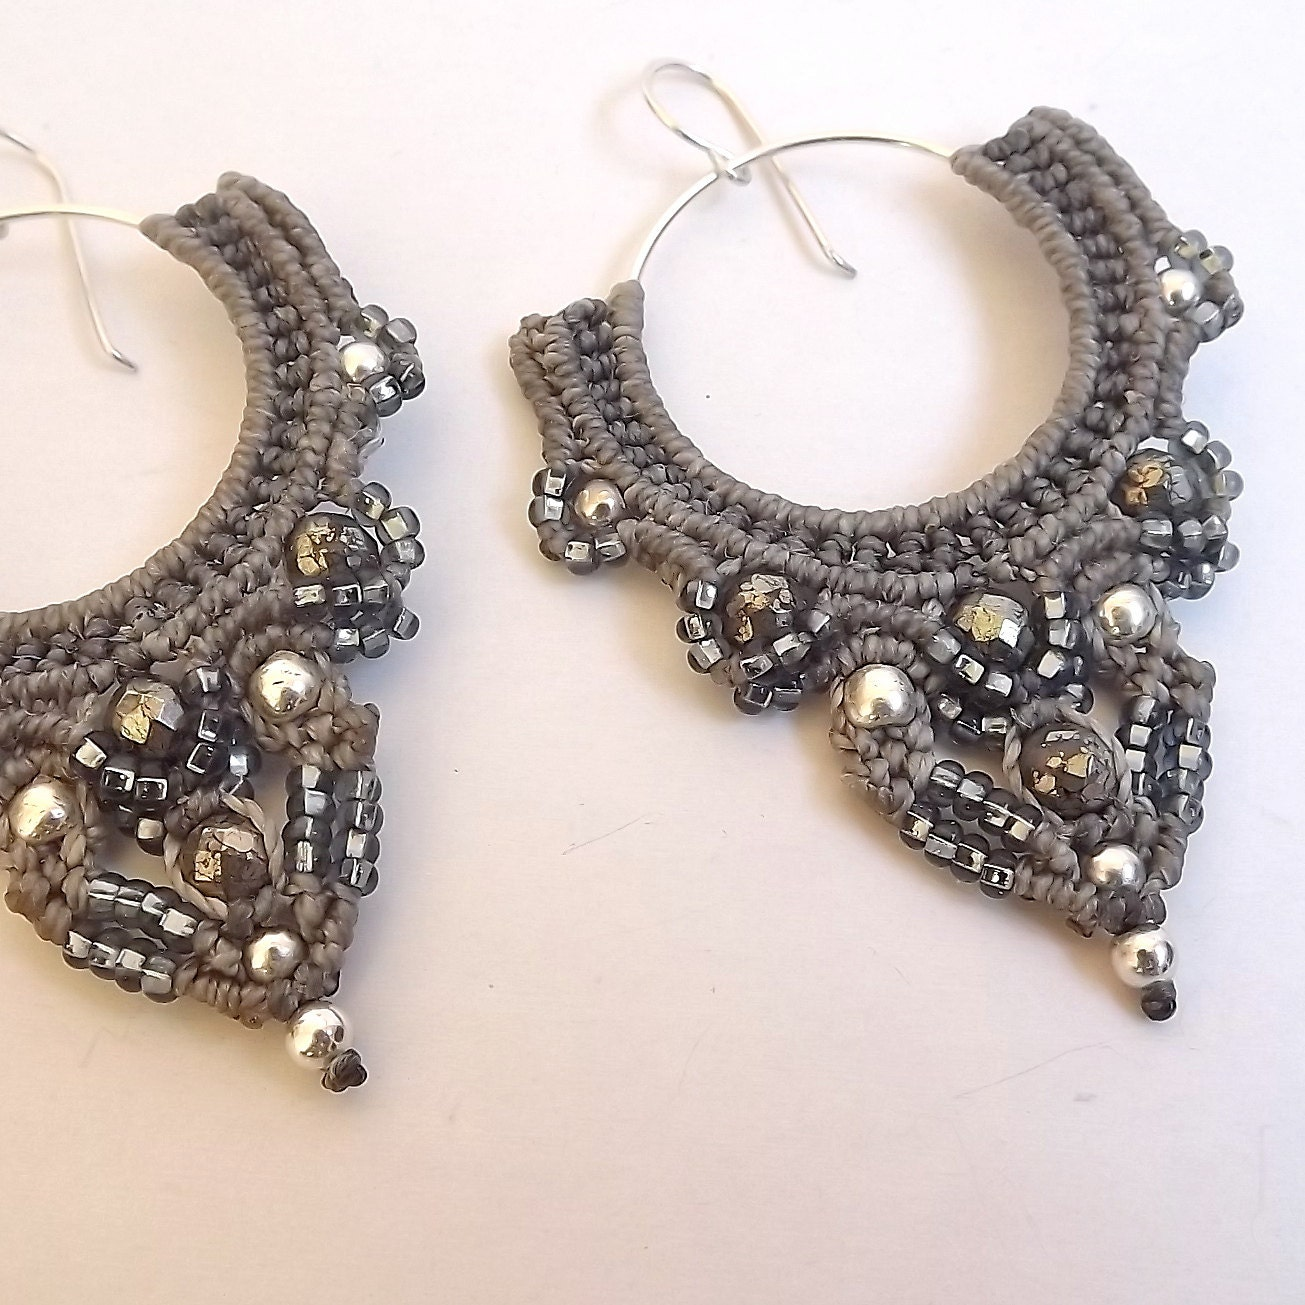 Macrame Earrings - Shades of Gray, Silver and Pyrite - neferknots